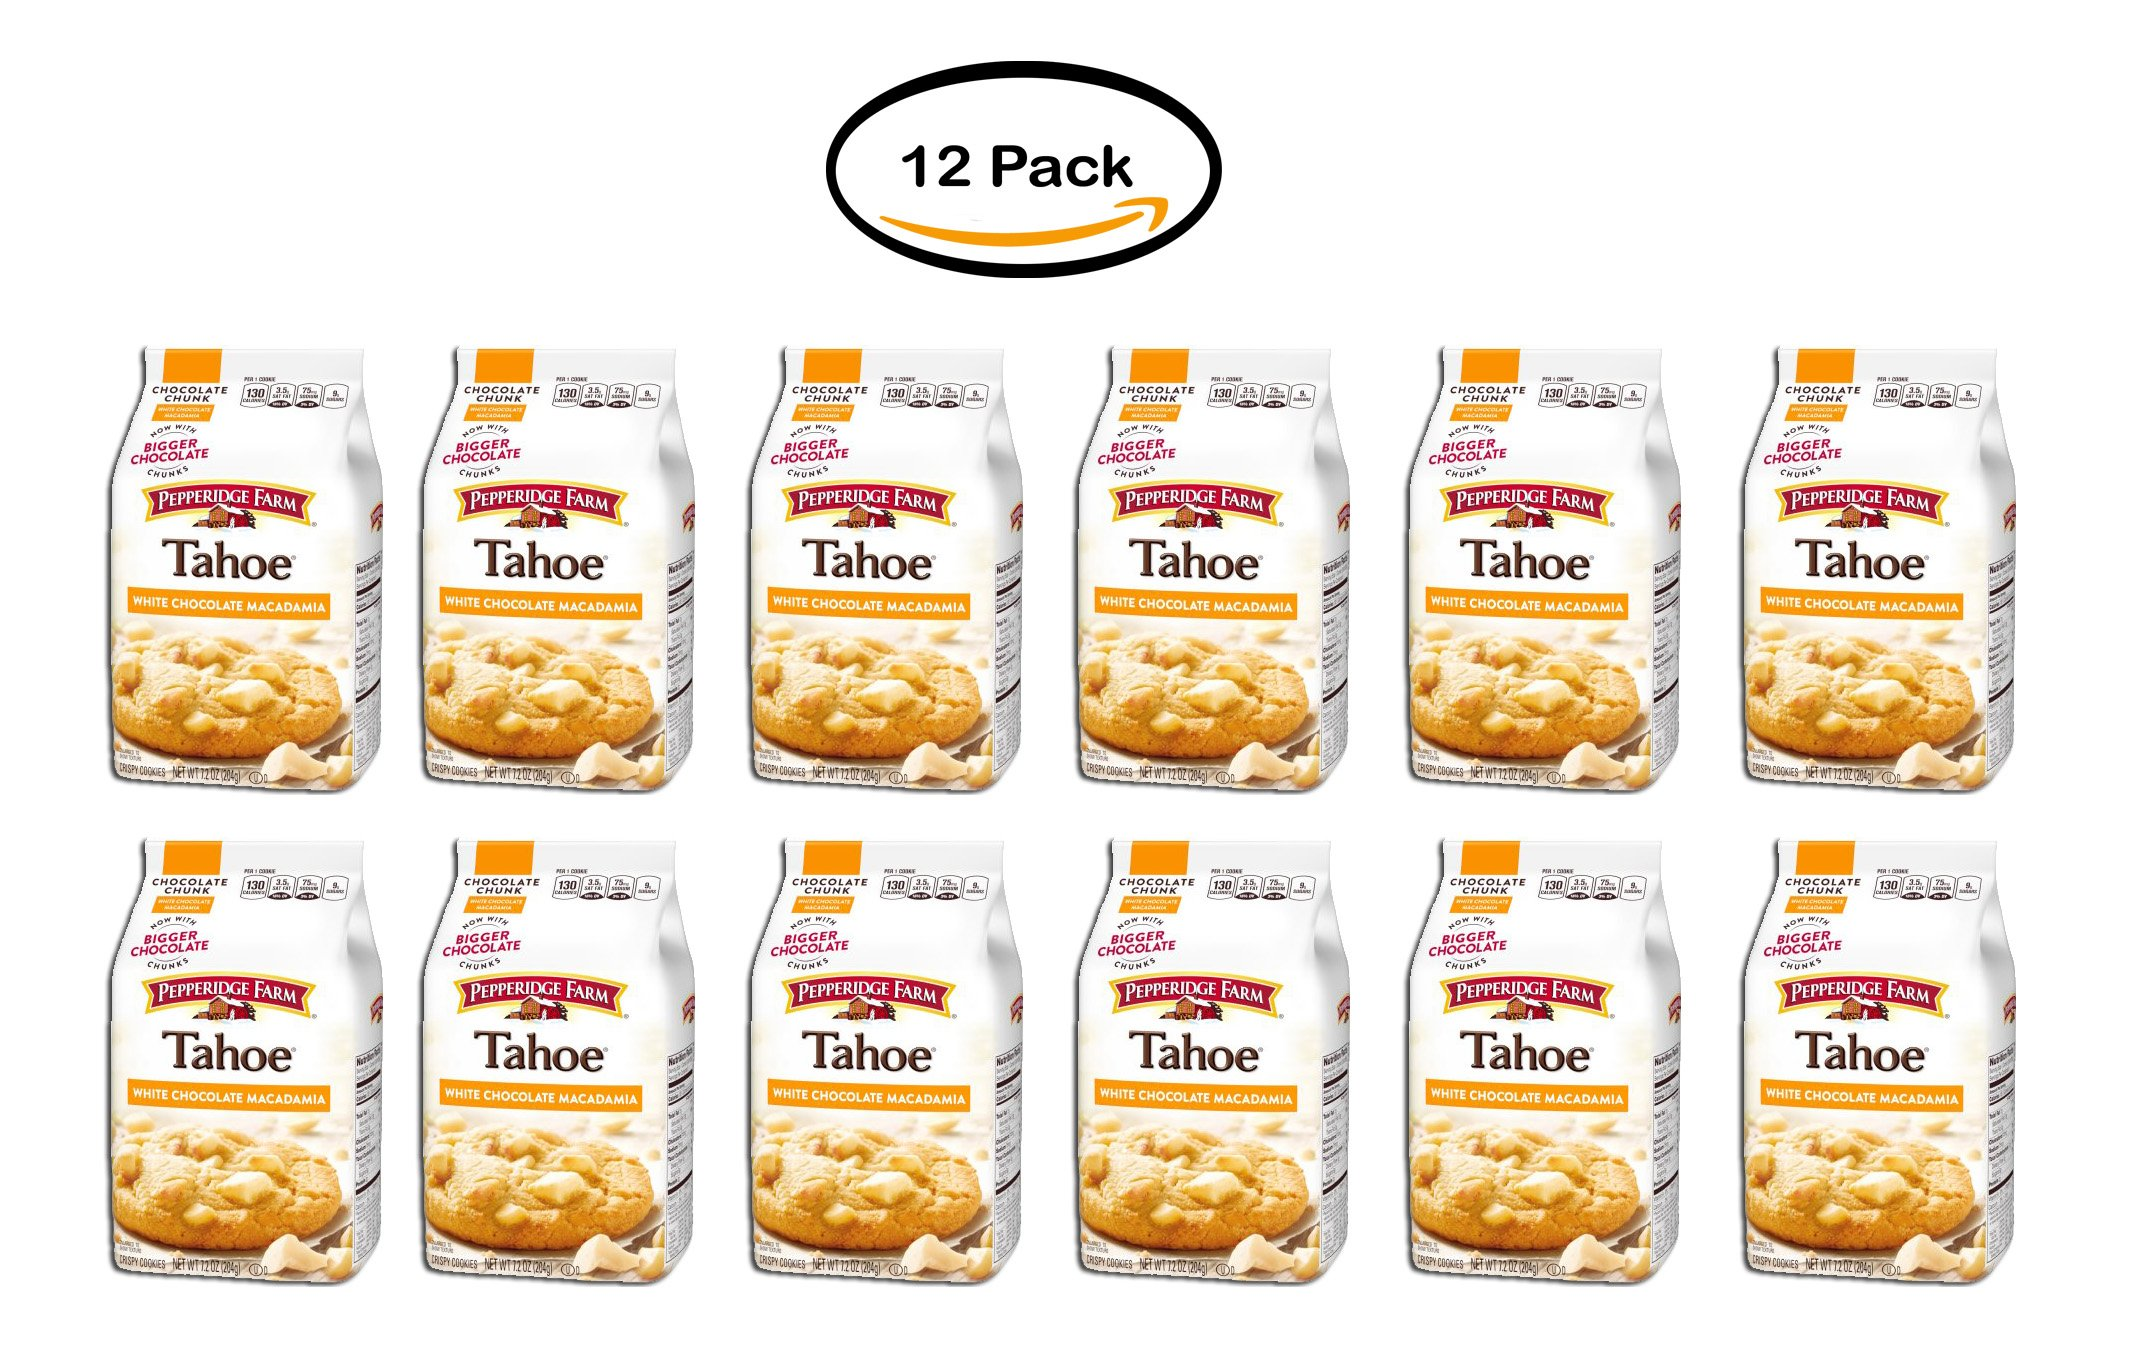 PACK OF 12 - Pepperidge Farm Tahoe White Chocolate Macadamia Crispy Cookies 7.2 oz. Bag by Pepperidge Farm